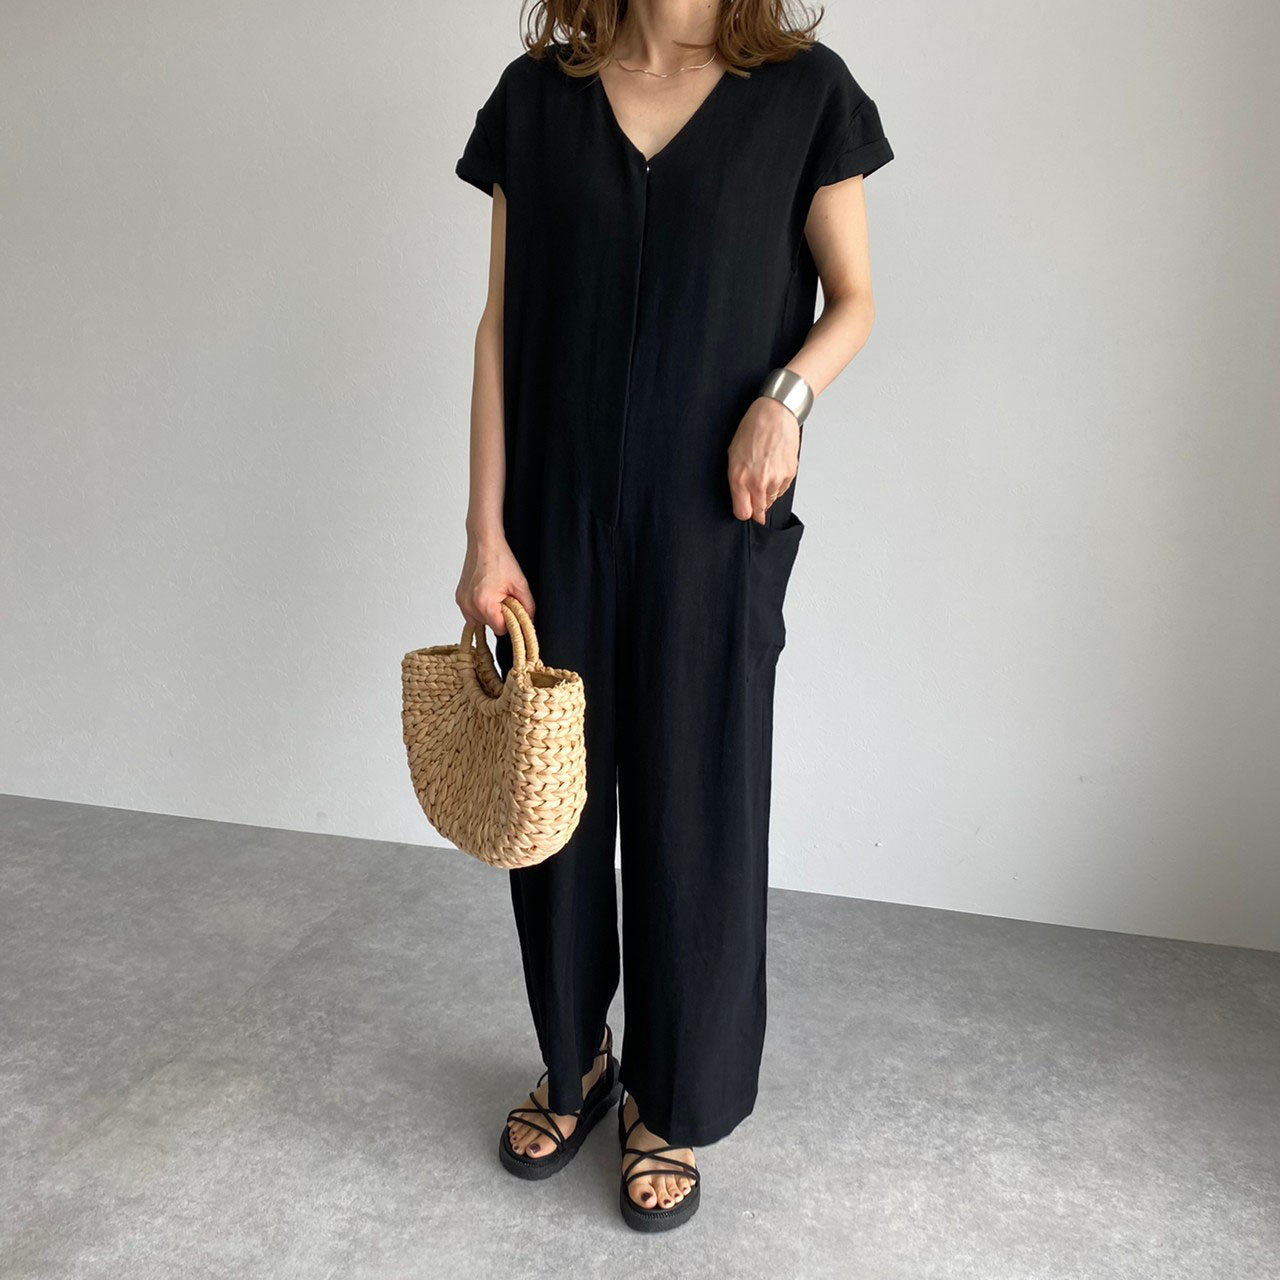 Japanese Style Fashion Simplicity Solid Color V-neck Summer Women's Rompers Loose Casual Pocket 2021 Office Lady Clothes New